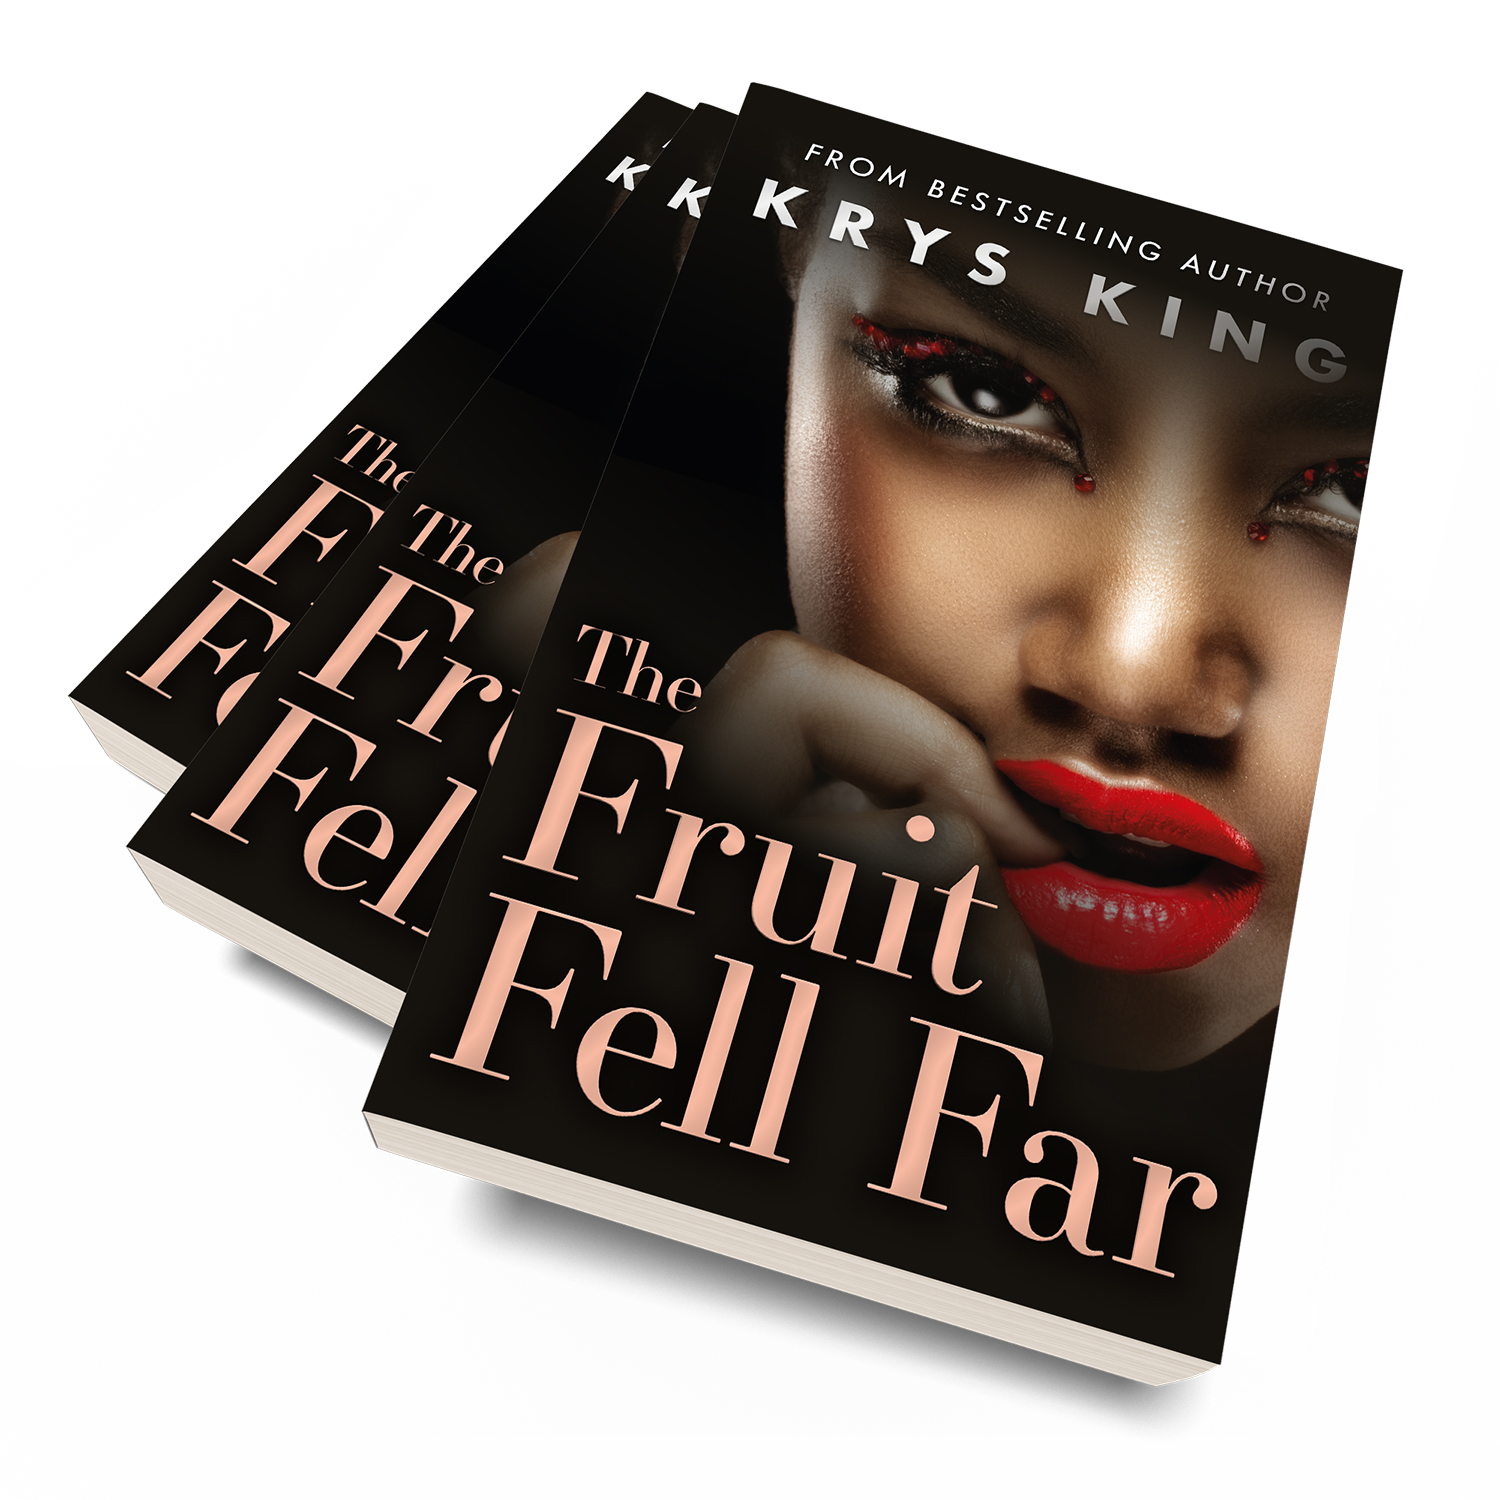 'The Fruit Fell Far' is a steamy modern novel, by author Krys King. The book cover was designed by Mark Thomas, of coverness.com. To find out more about my book design services, please visit www.coverness.com.